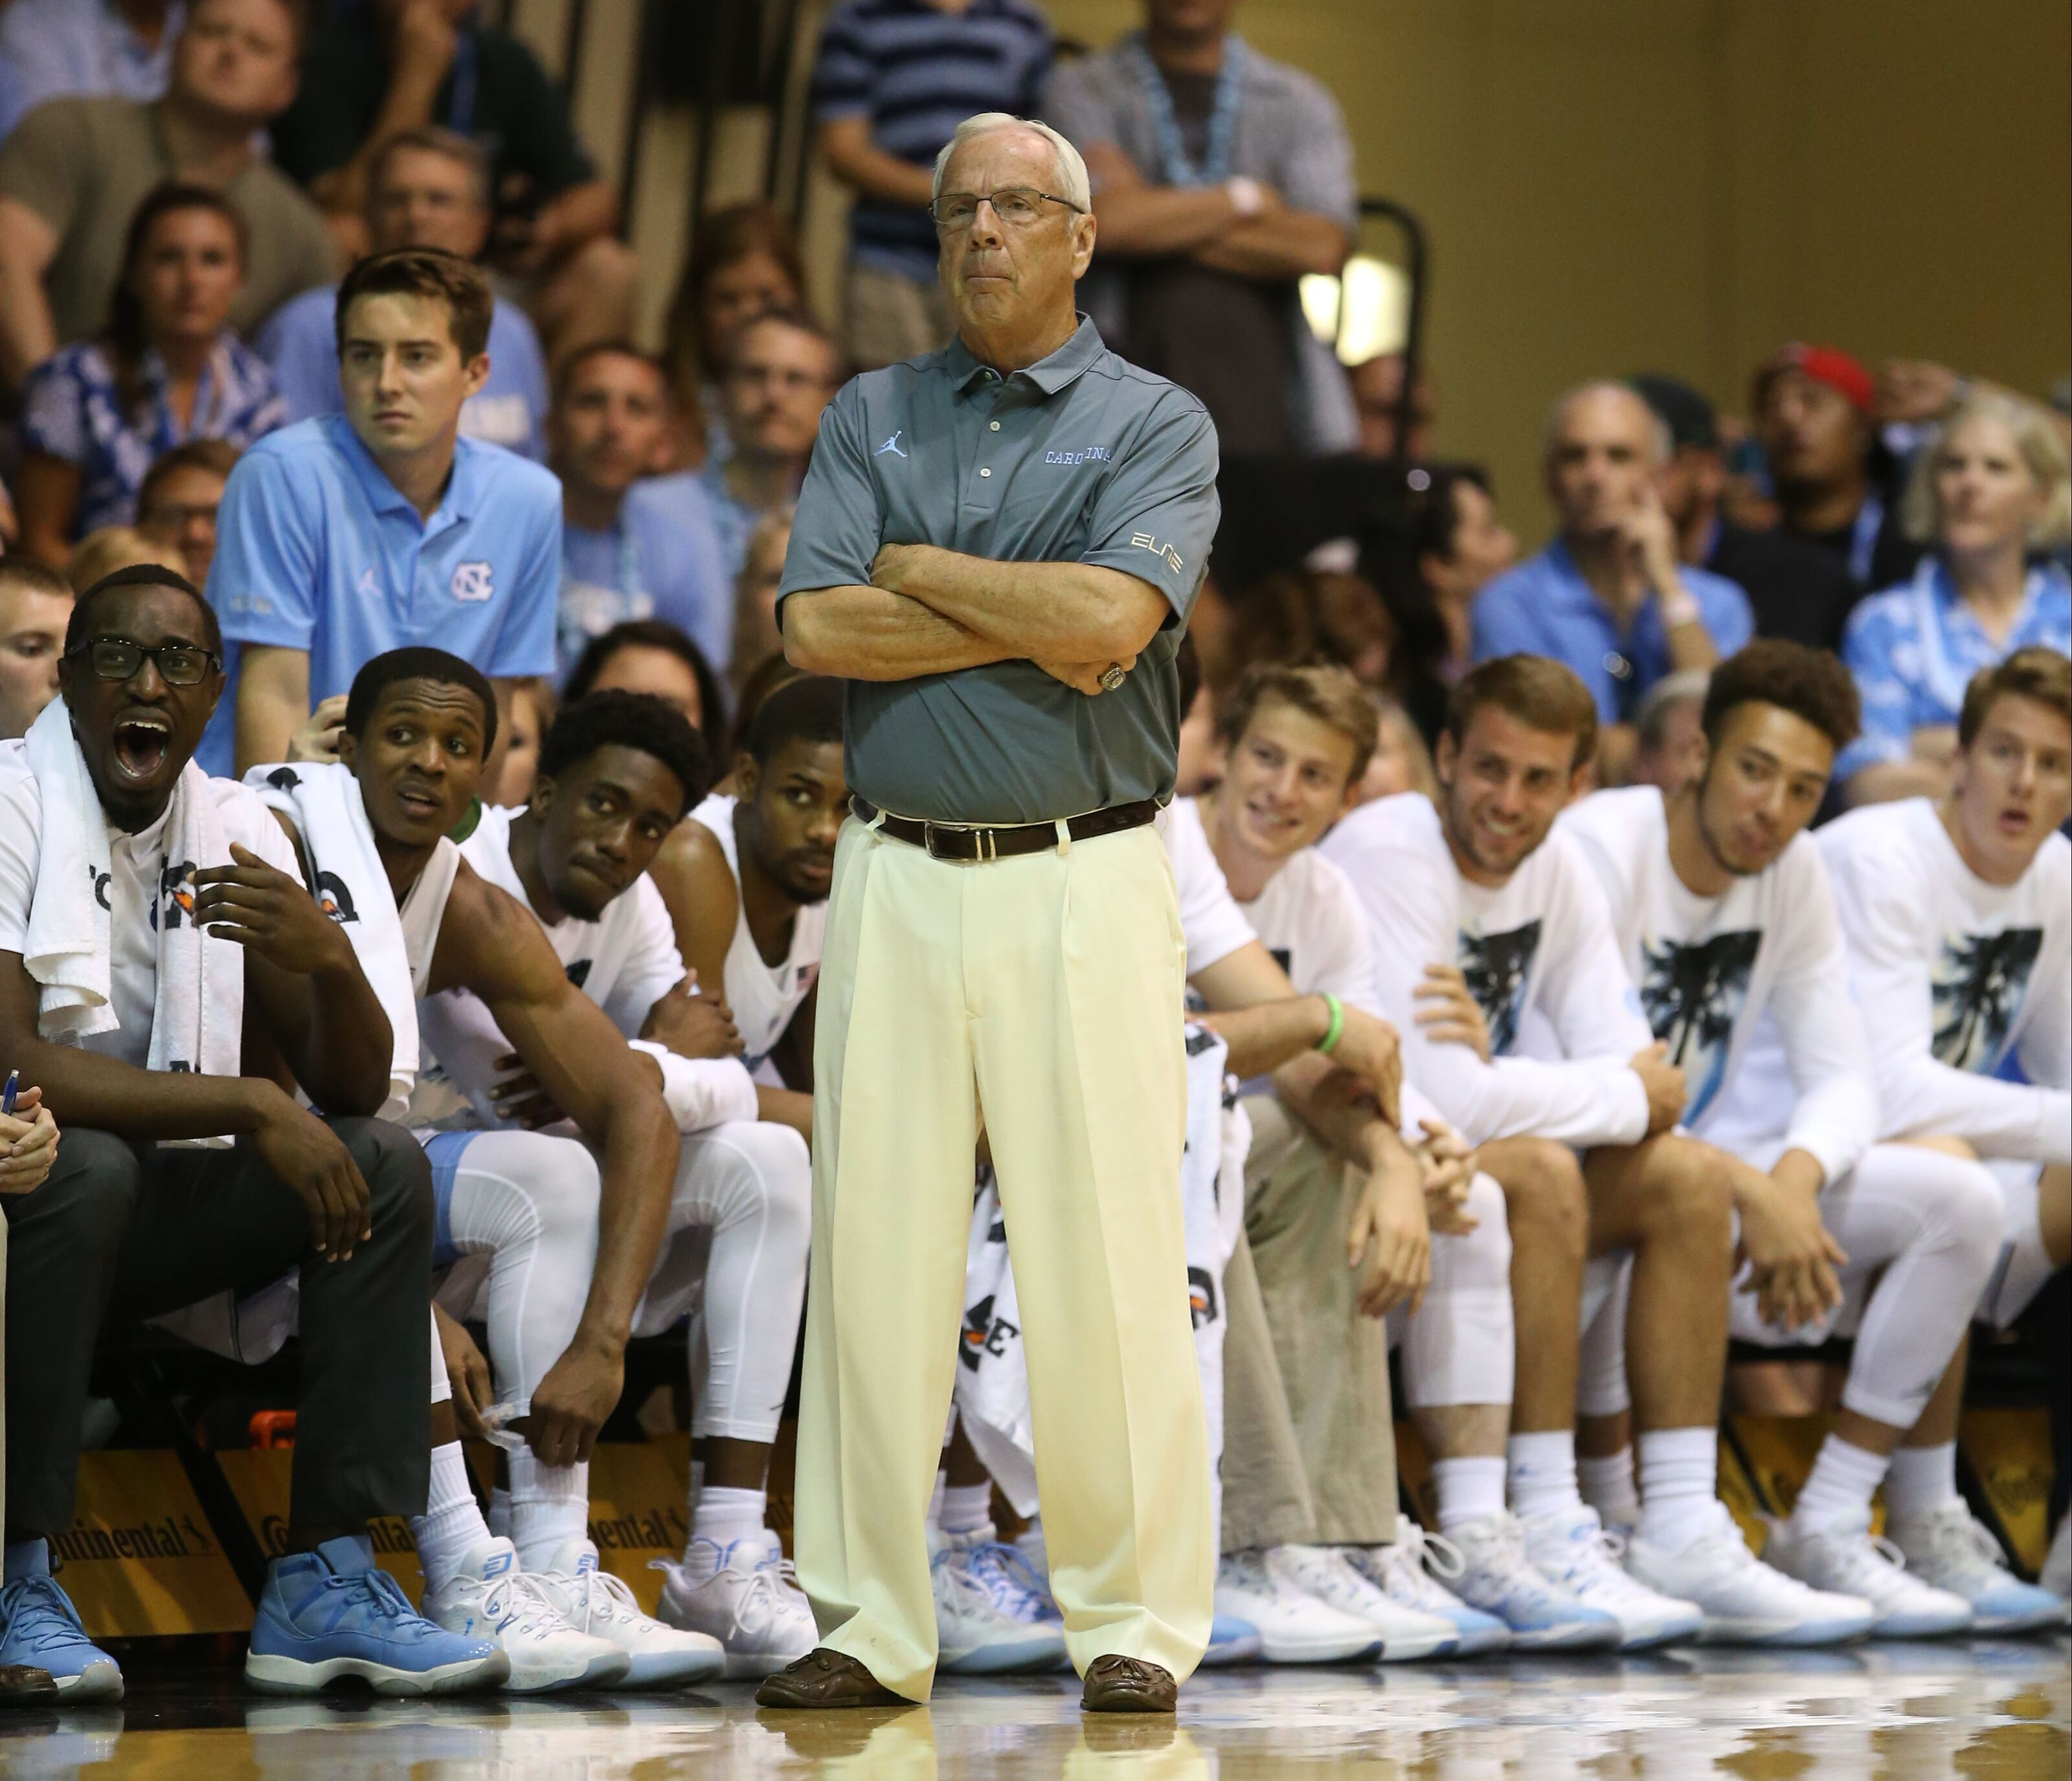 UNC Basketball: Christian Keeling set to visit Tar Heels Tuesday night